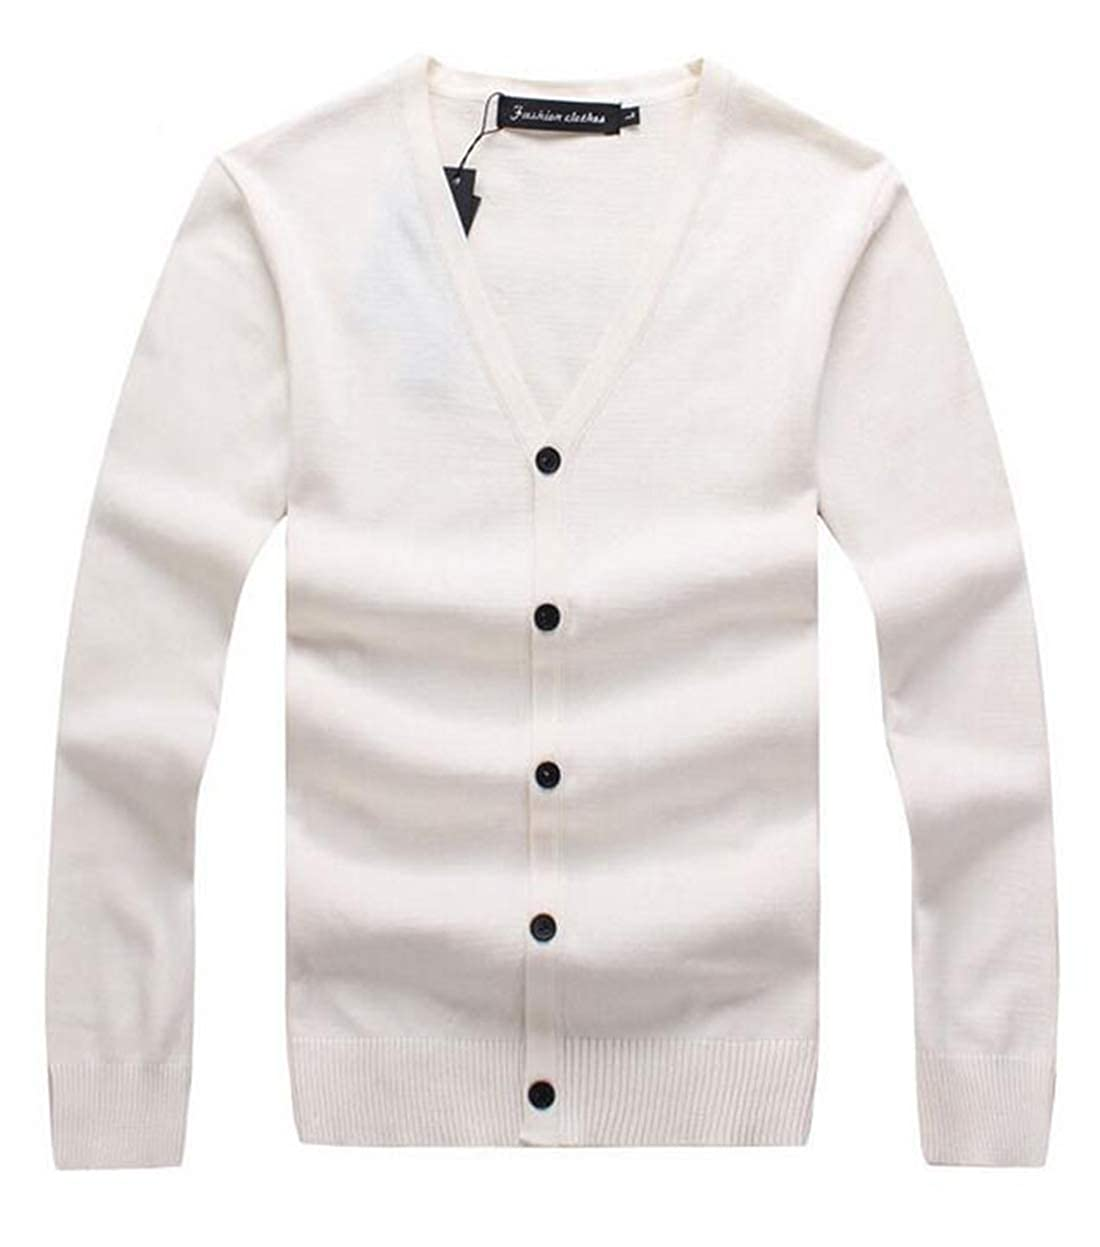 Domple Mens Casual Plain Long Sleeve V Neck Buttons Slim Fit Knitting Cotton Sweater Cardigan